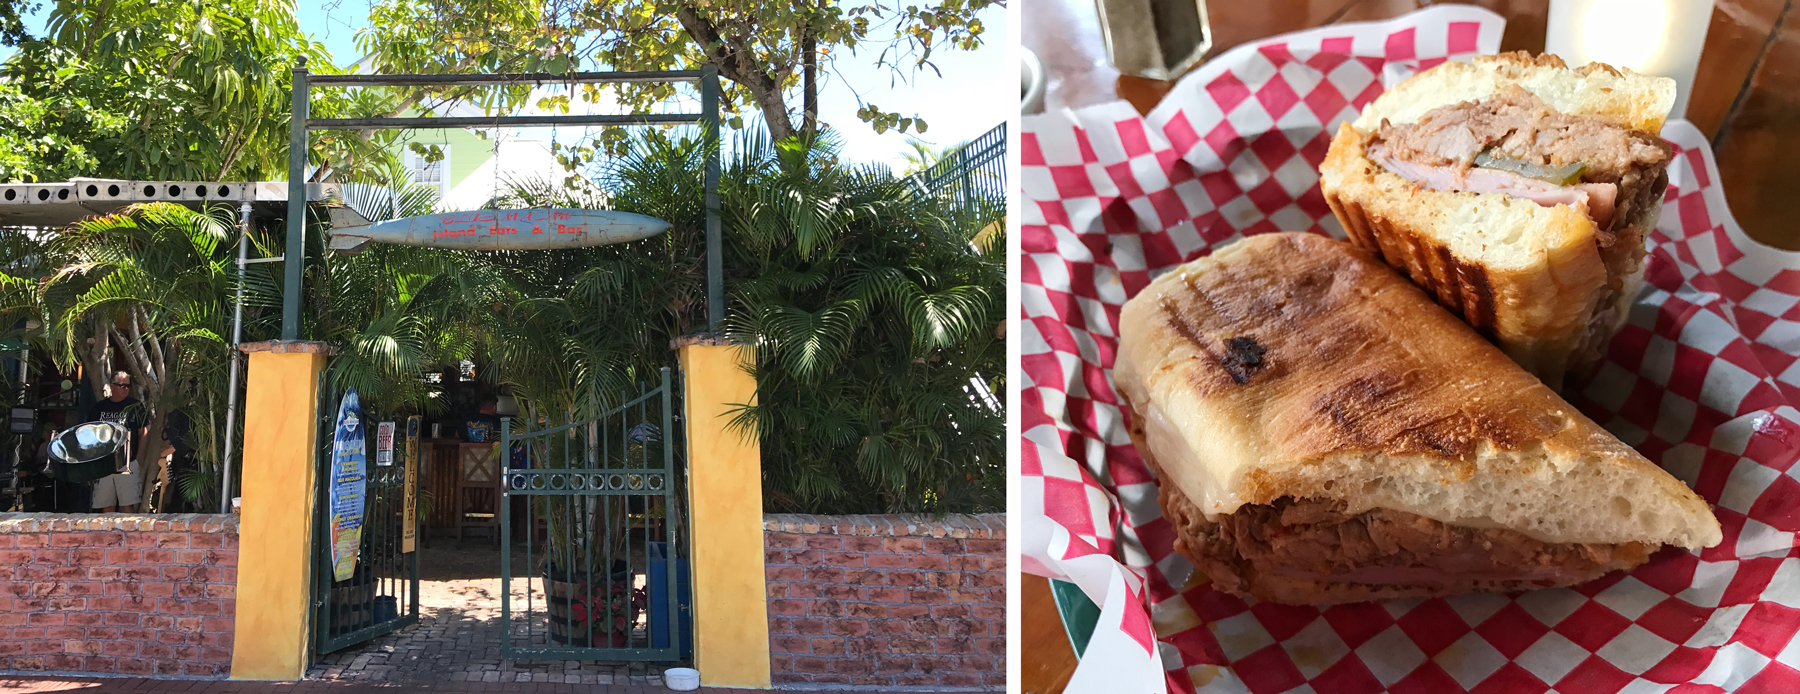 The Blue Macaw just might have the best cubano in Florida (sorry Miami!)